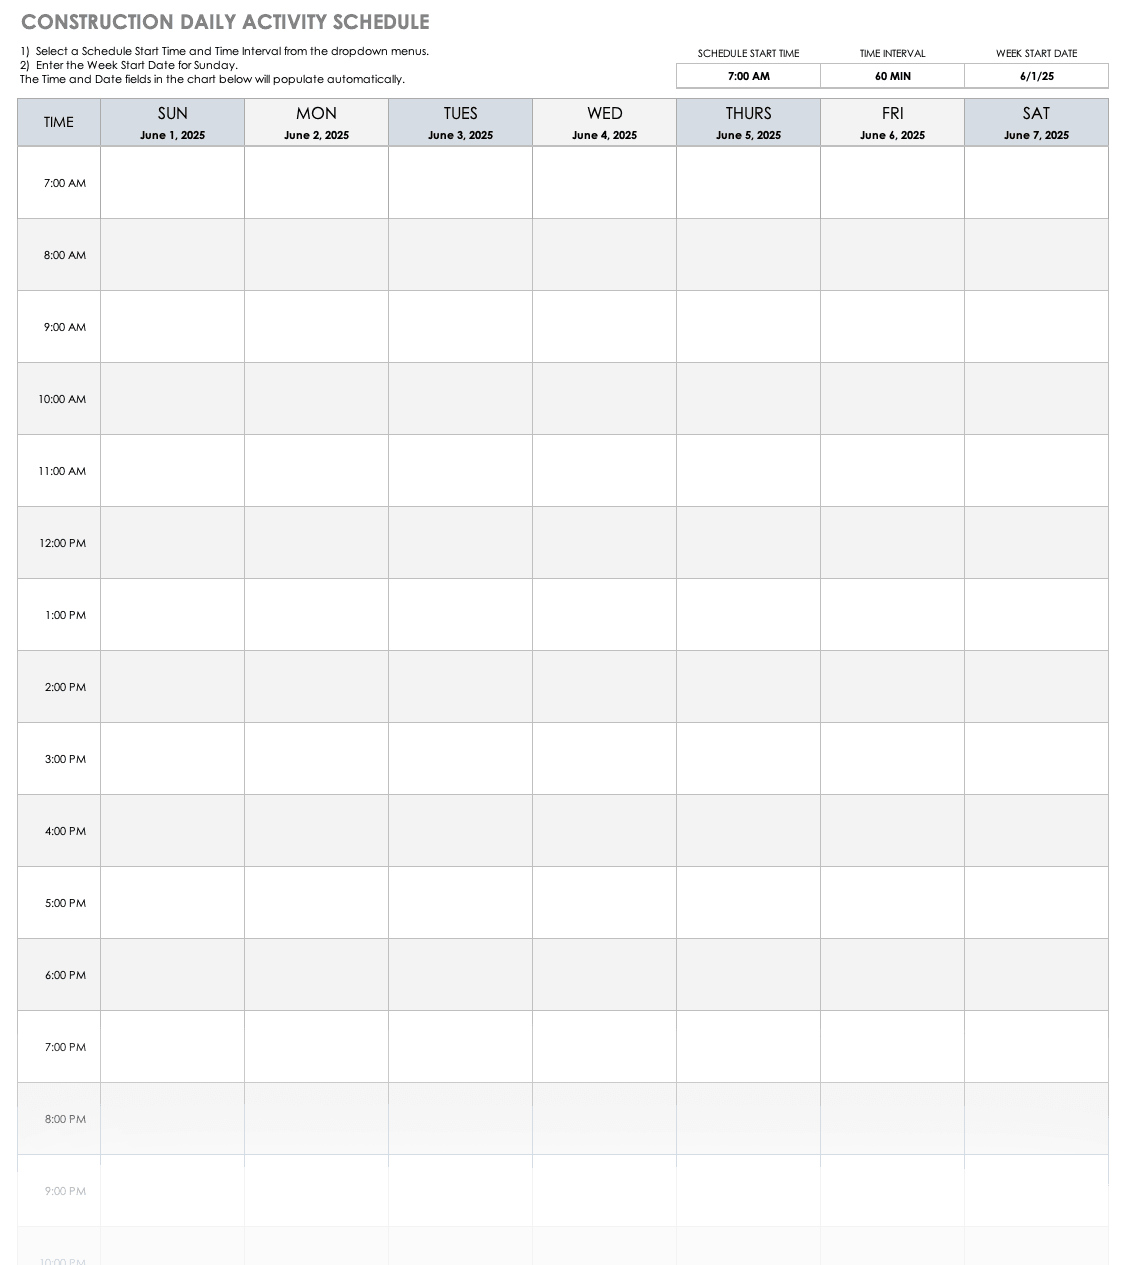 Construction Daily Activity Schedule Template